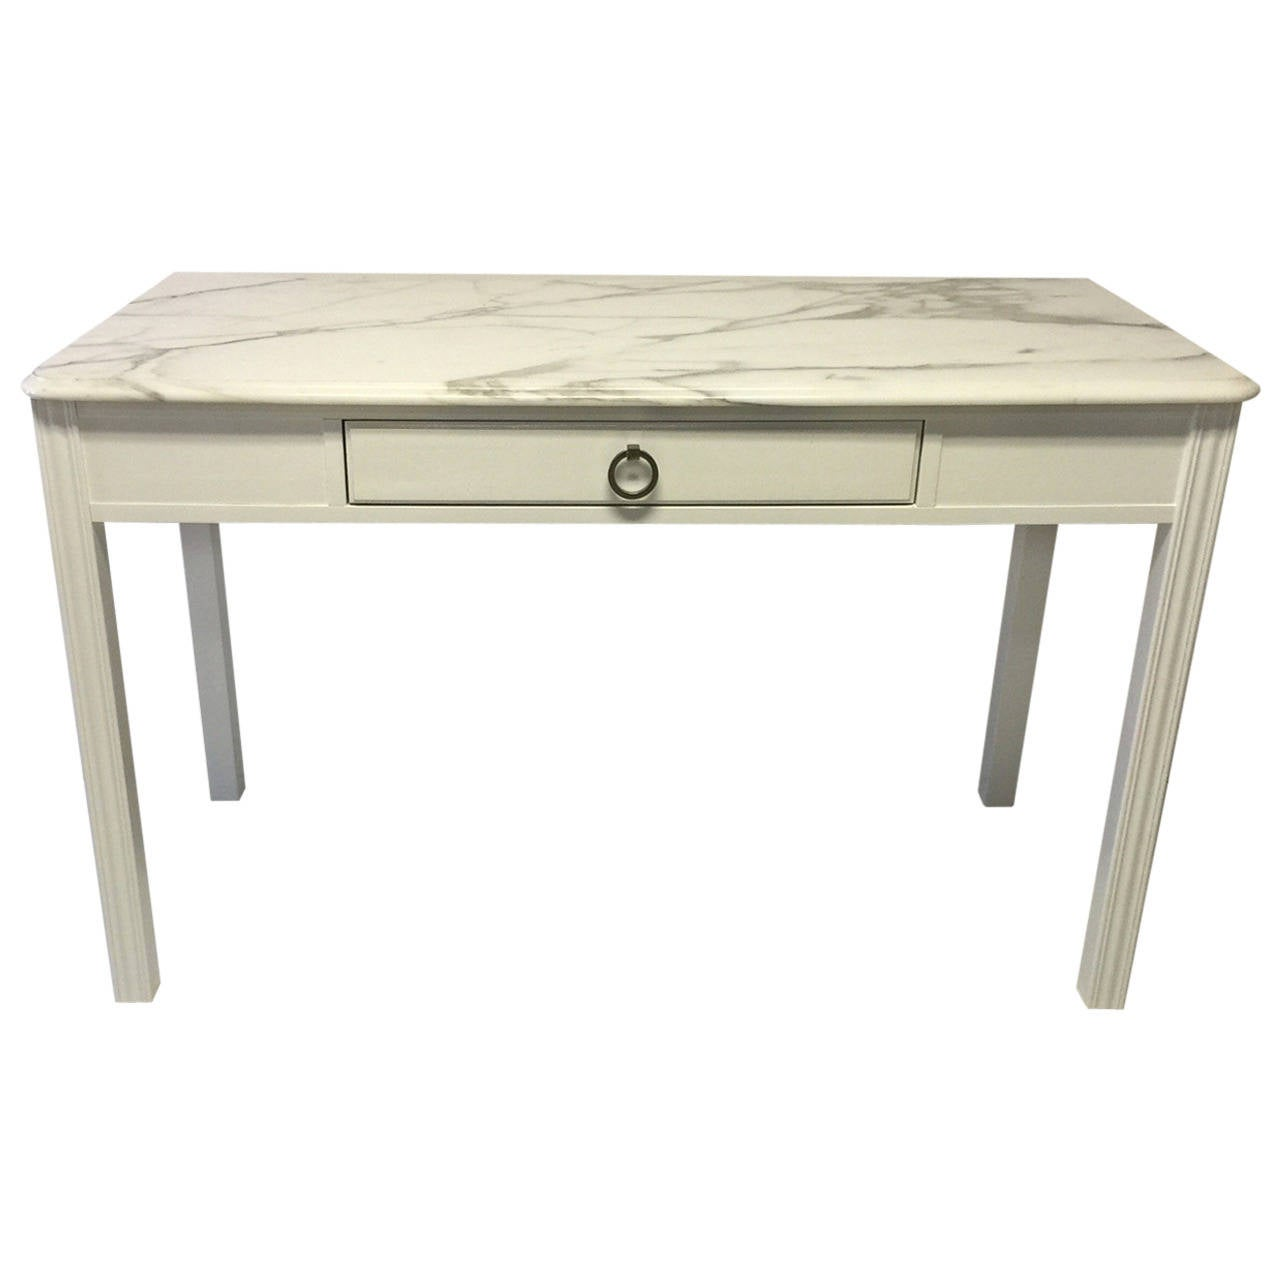 Drexel Lacquered Desk With Carrara Marble Top At 1stdibs